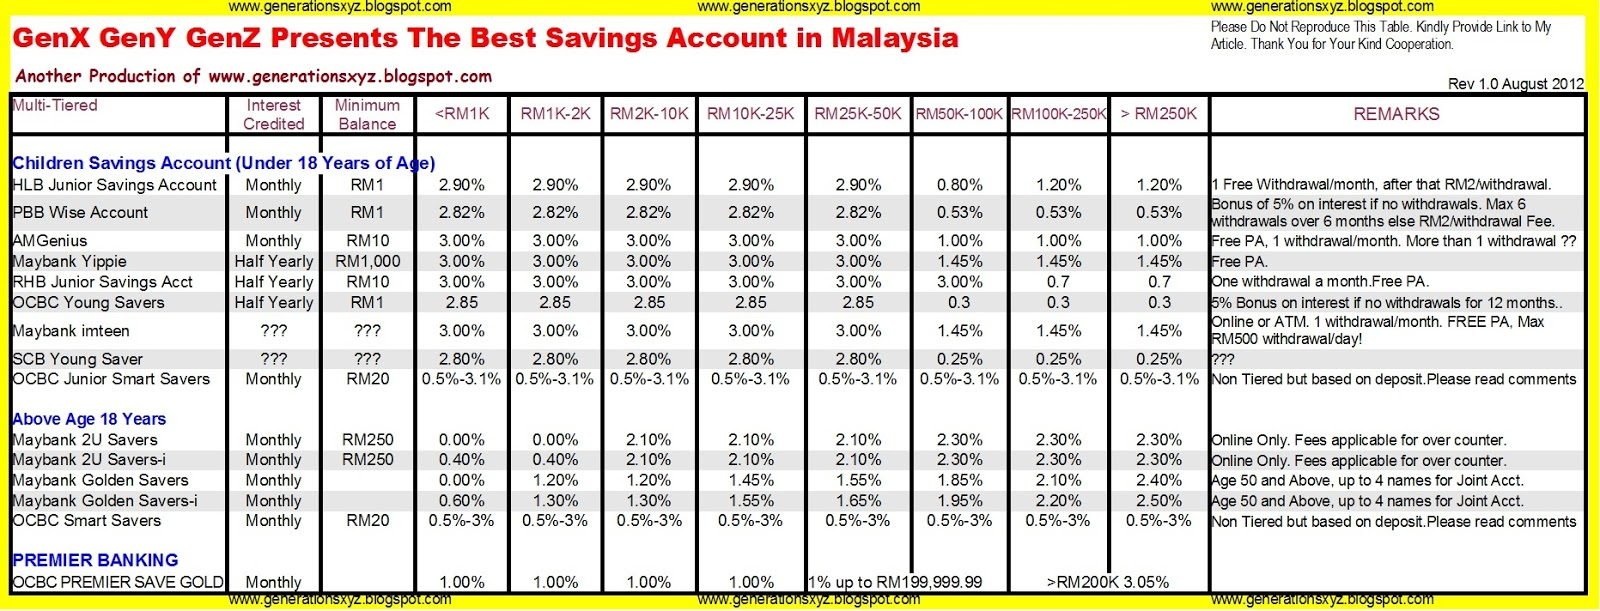 Children Savings Account